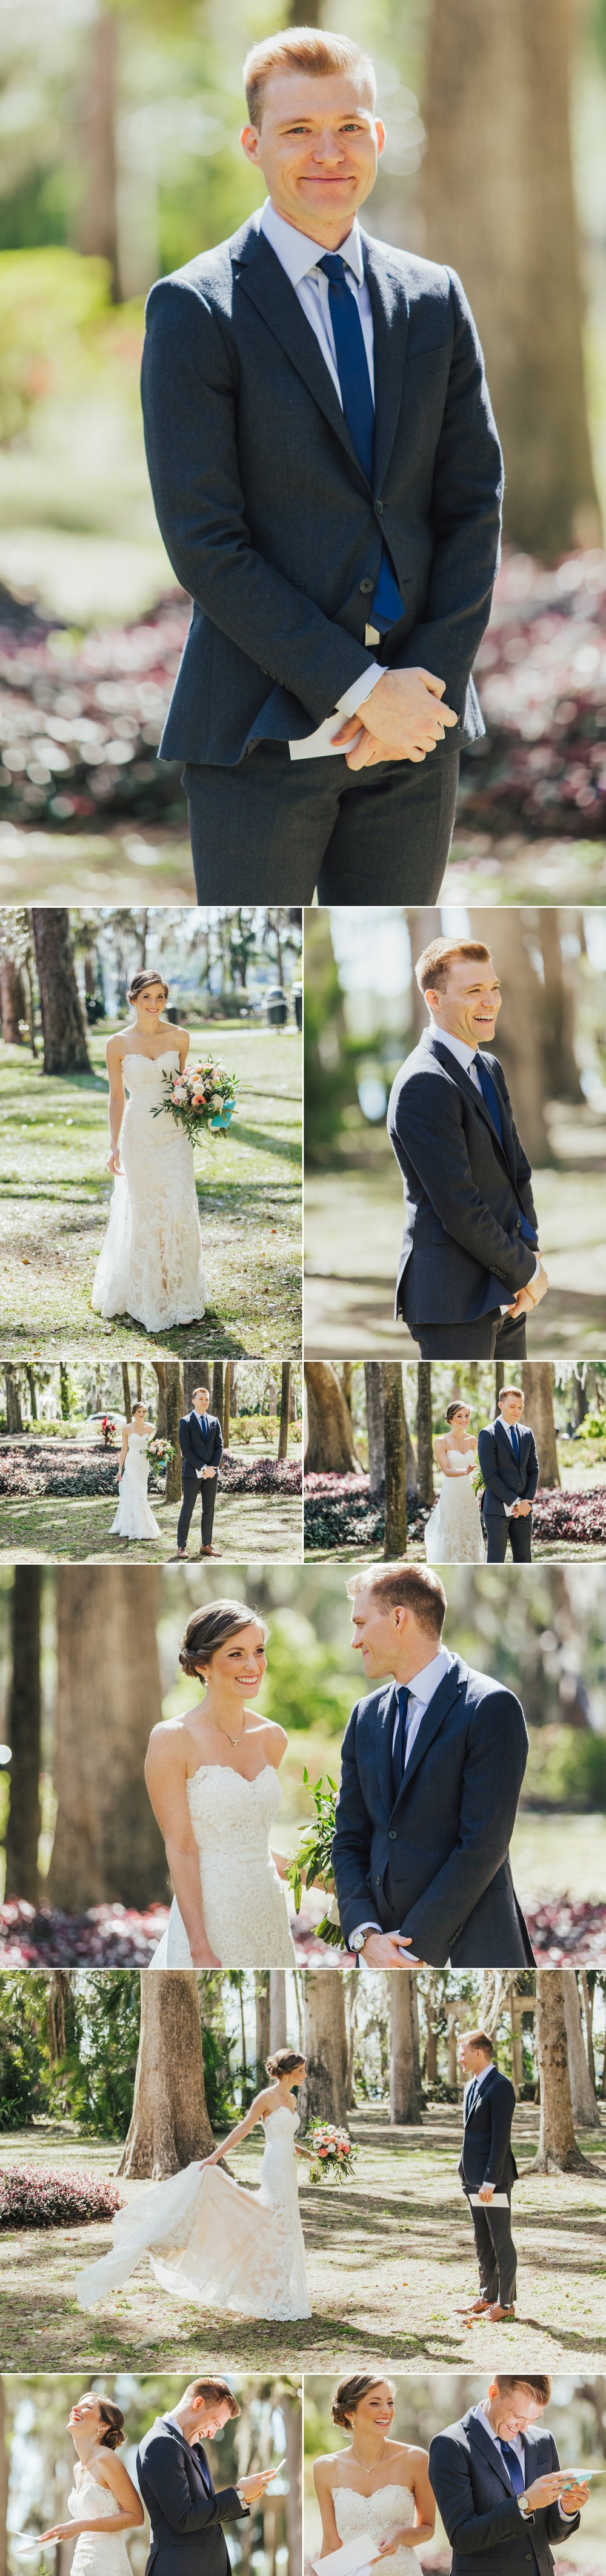 Winter Park farmers market wedding- bohemian chic floral wedding photography by Shaina DeCiryan5.jpg